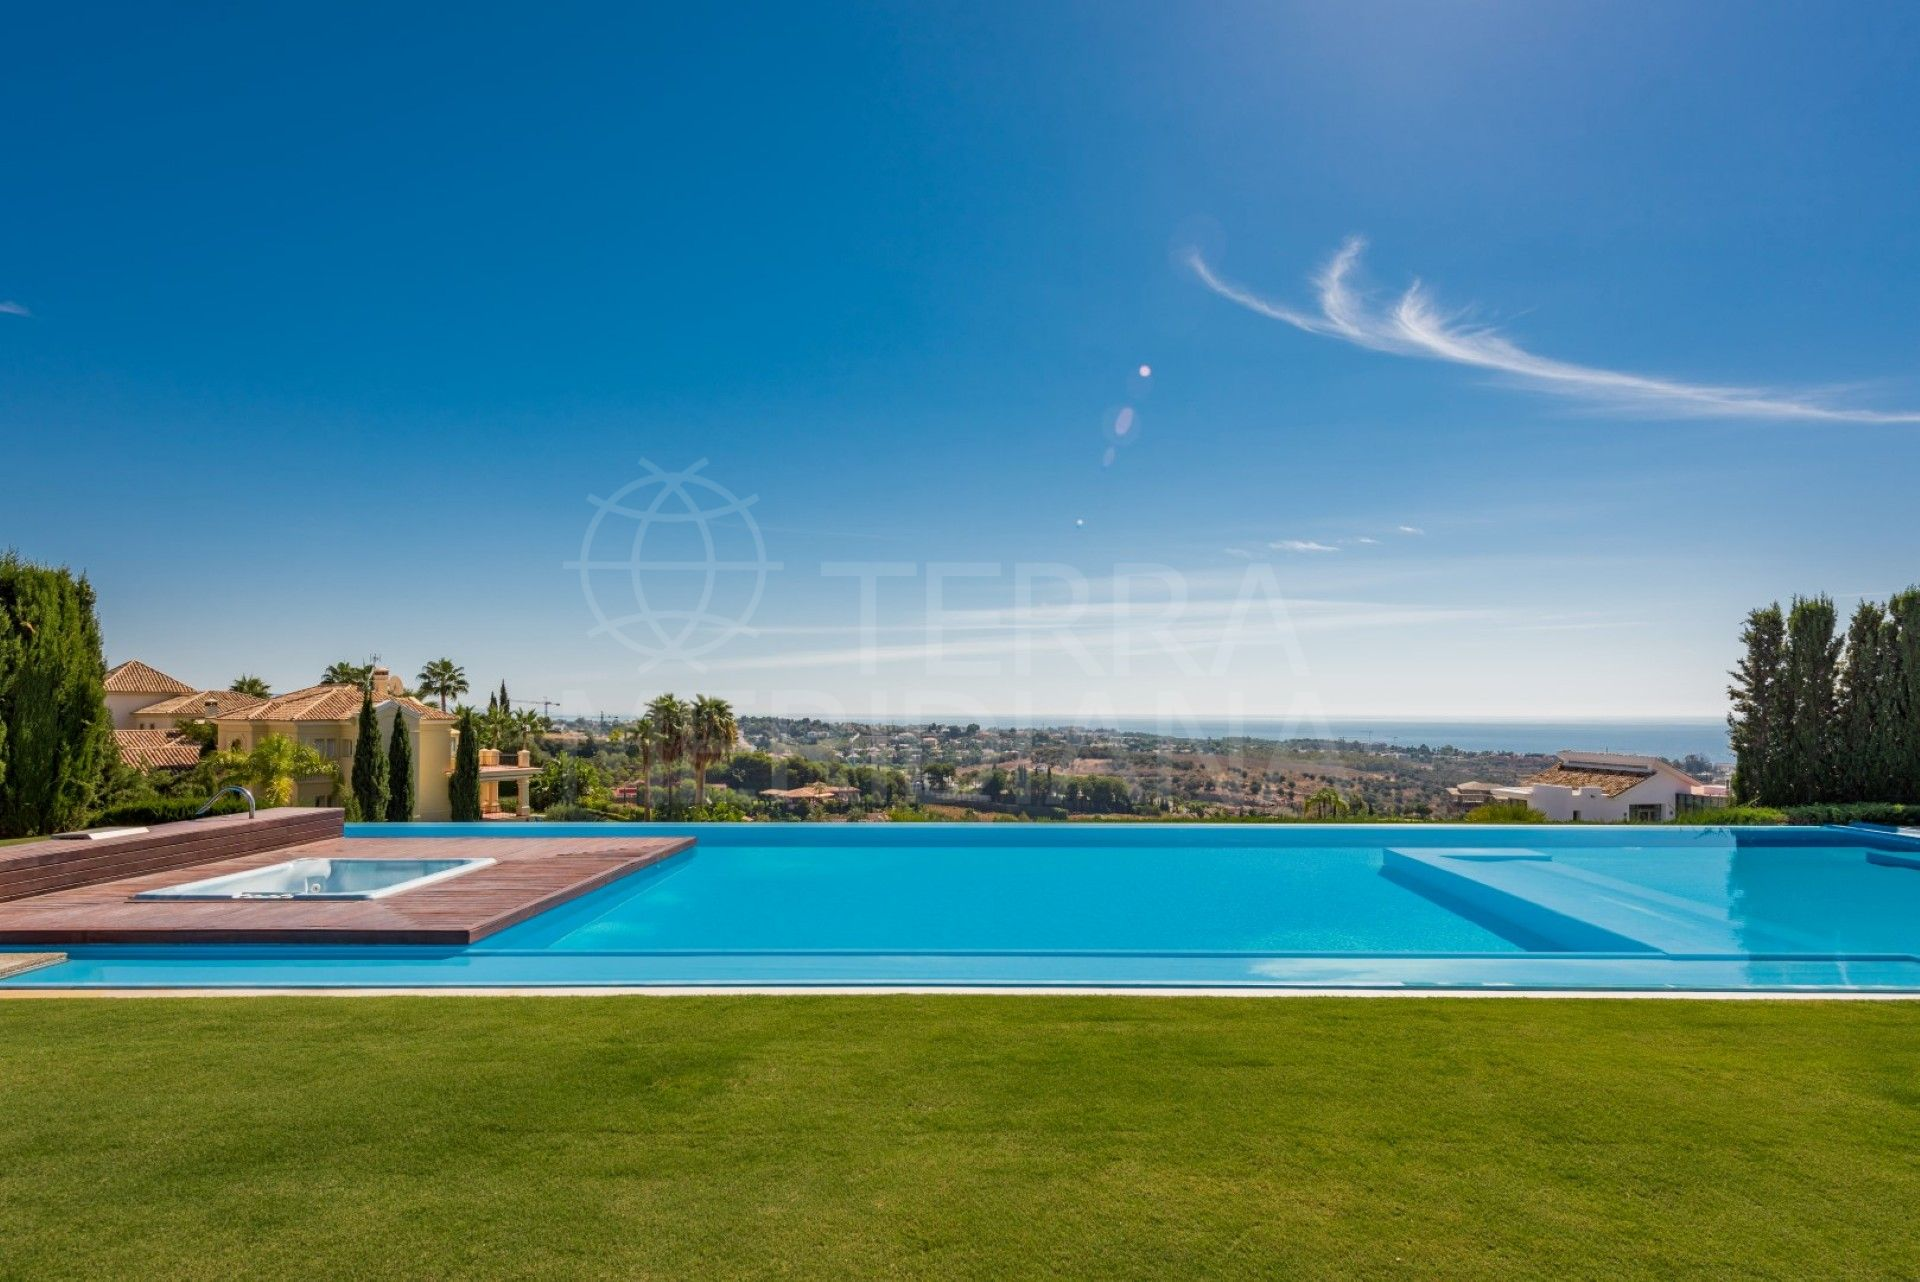 Modern 7 bedroom villa for sale in Los Flamingos, Benahavis with infinity pool and sea views